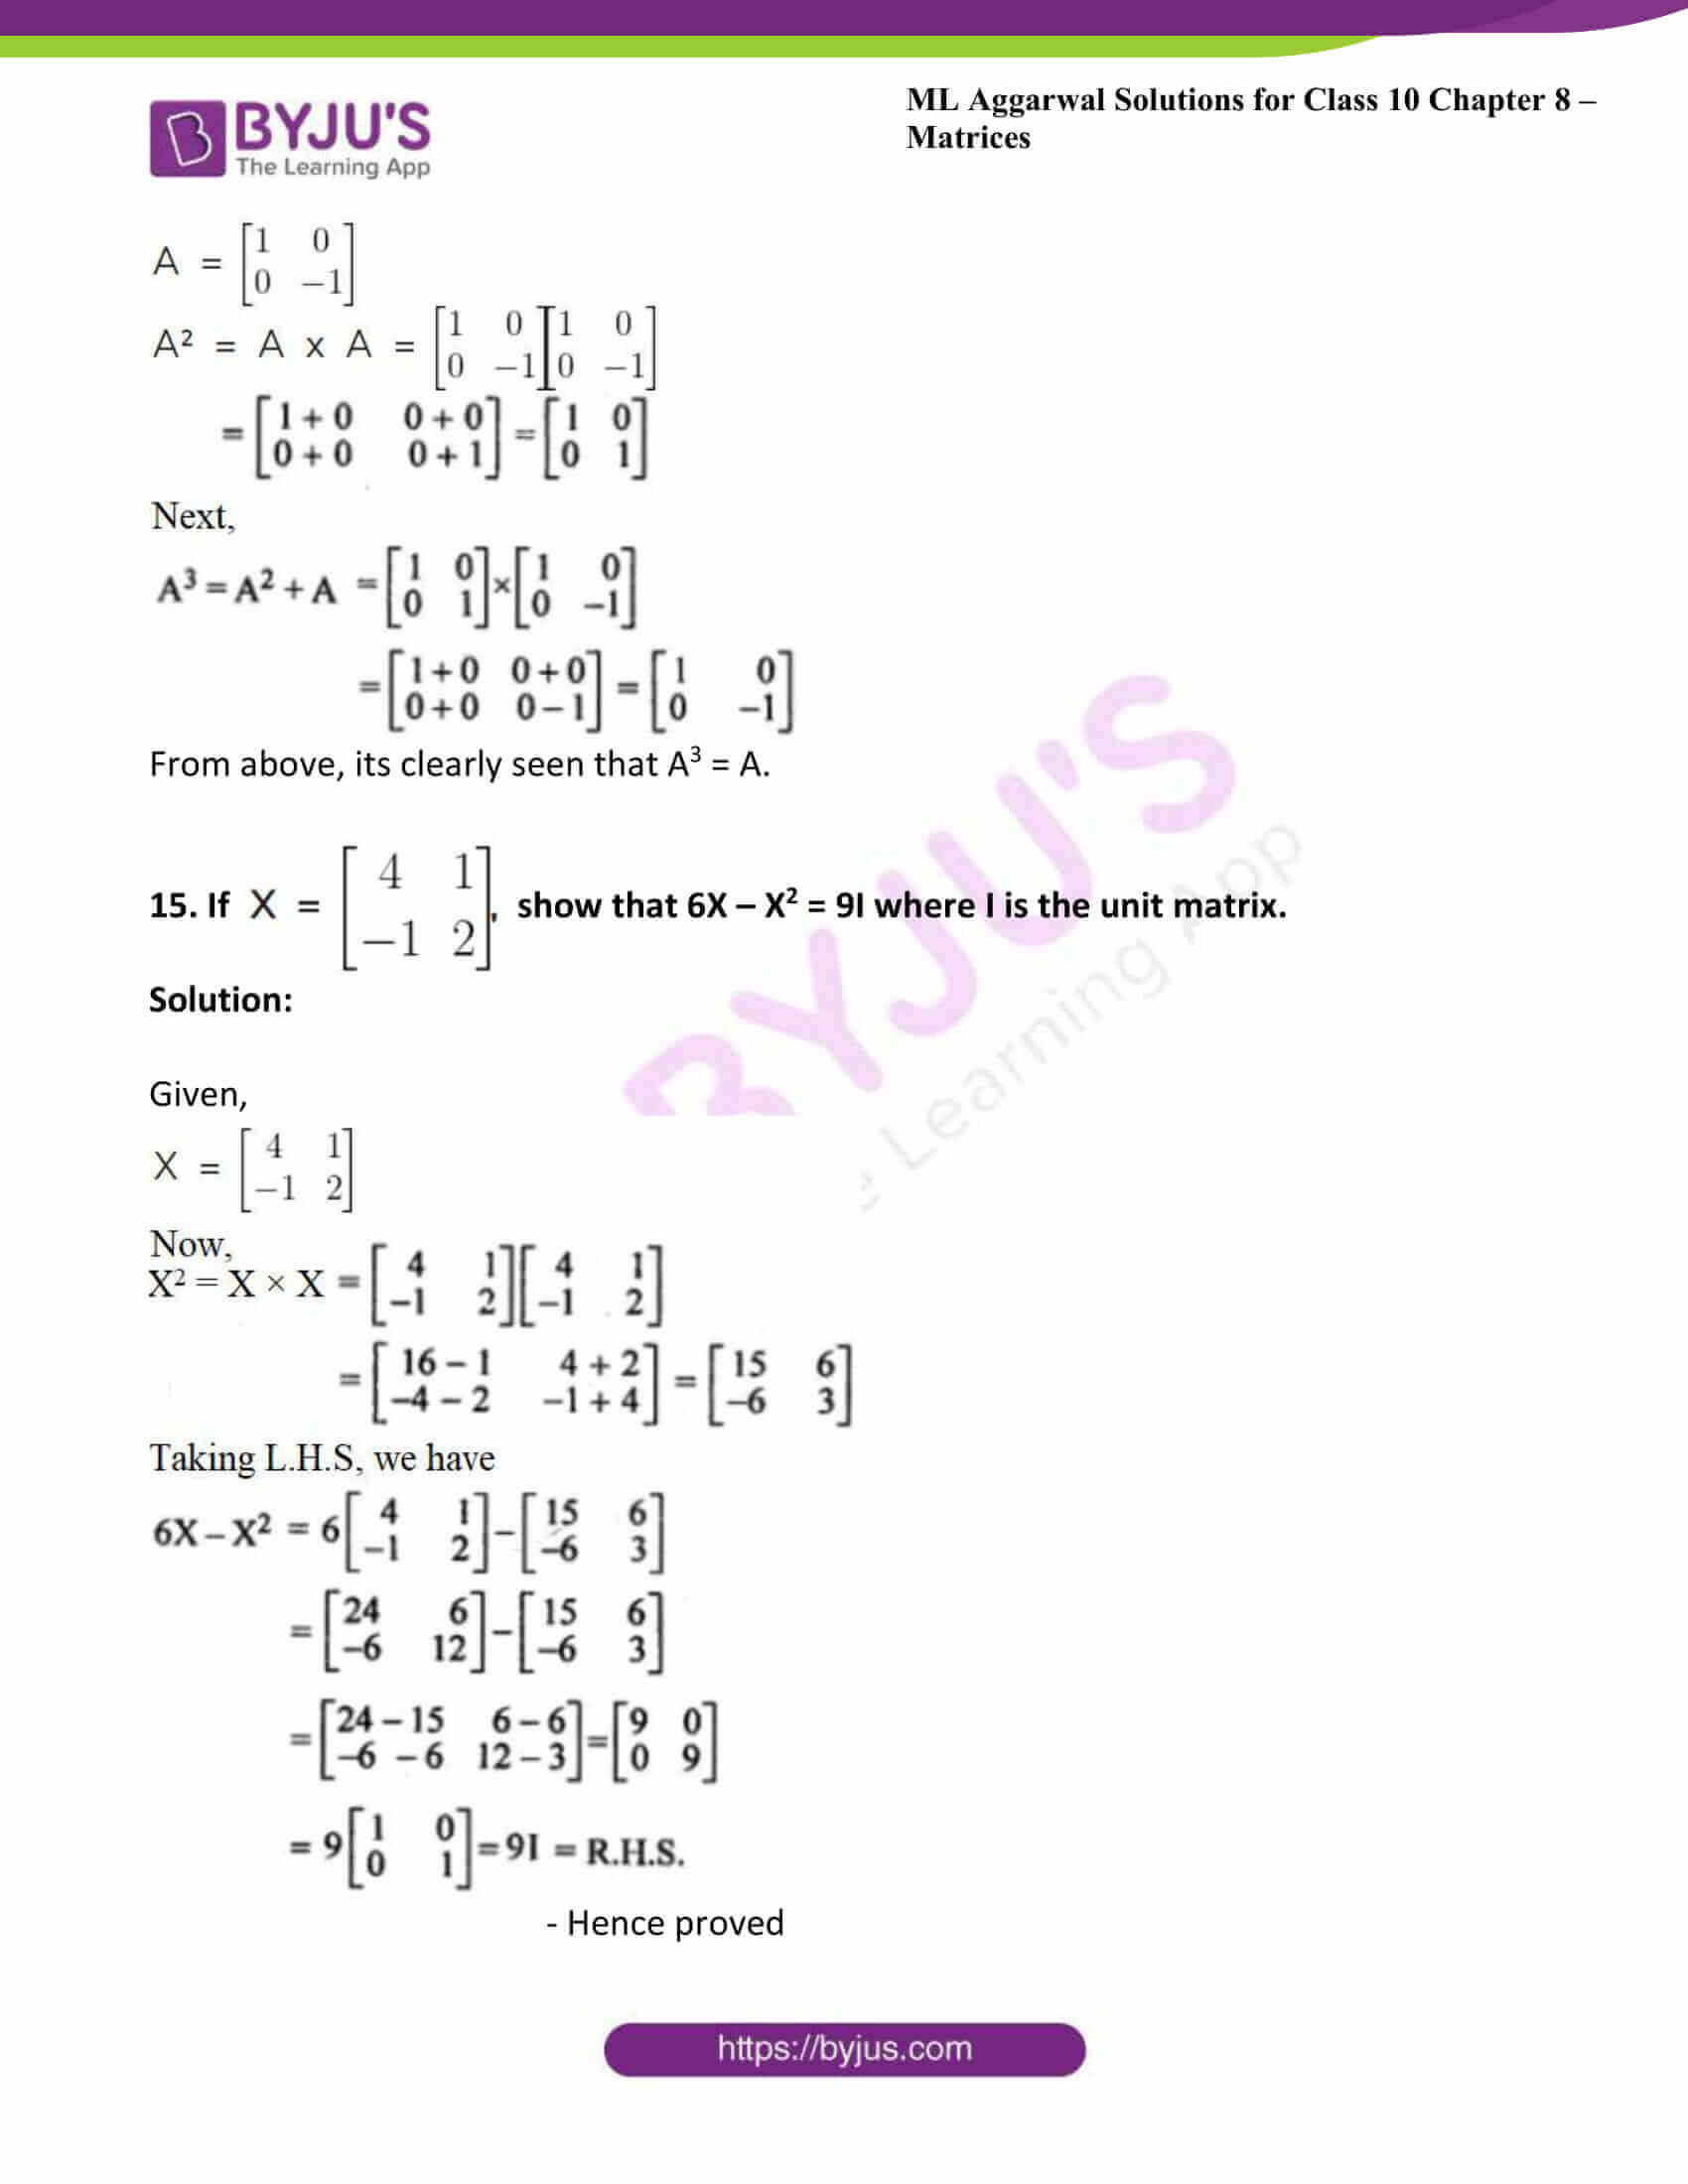 ml aggarwal solutions class 10 maths chapter 8 28